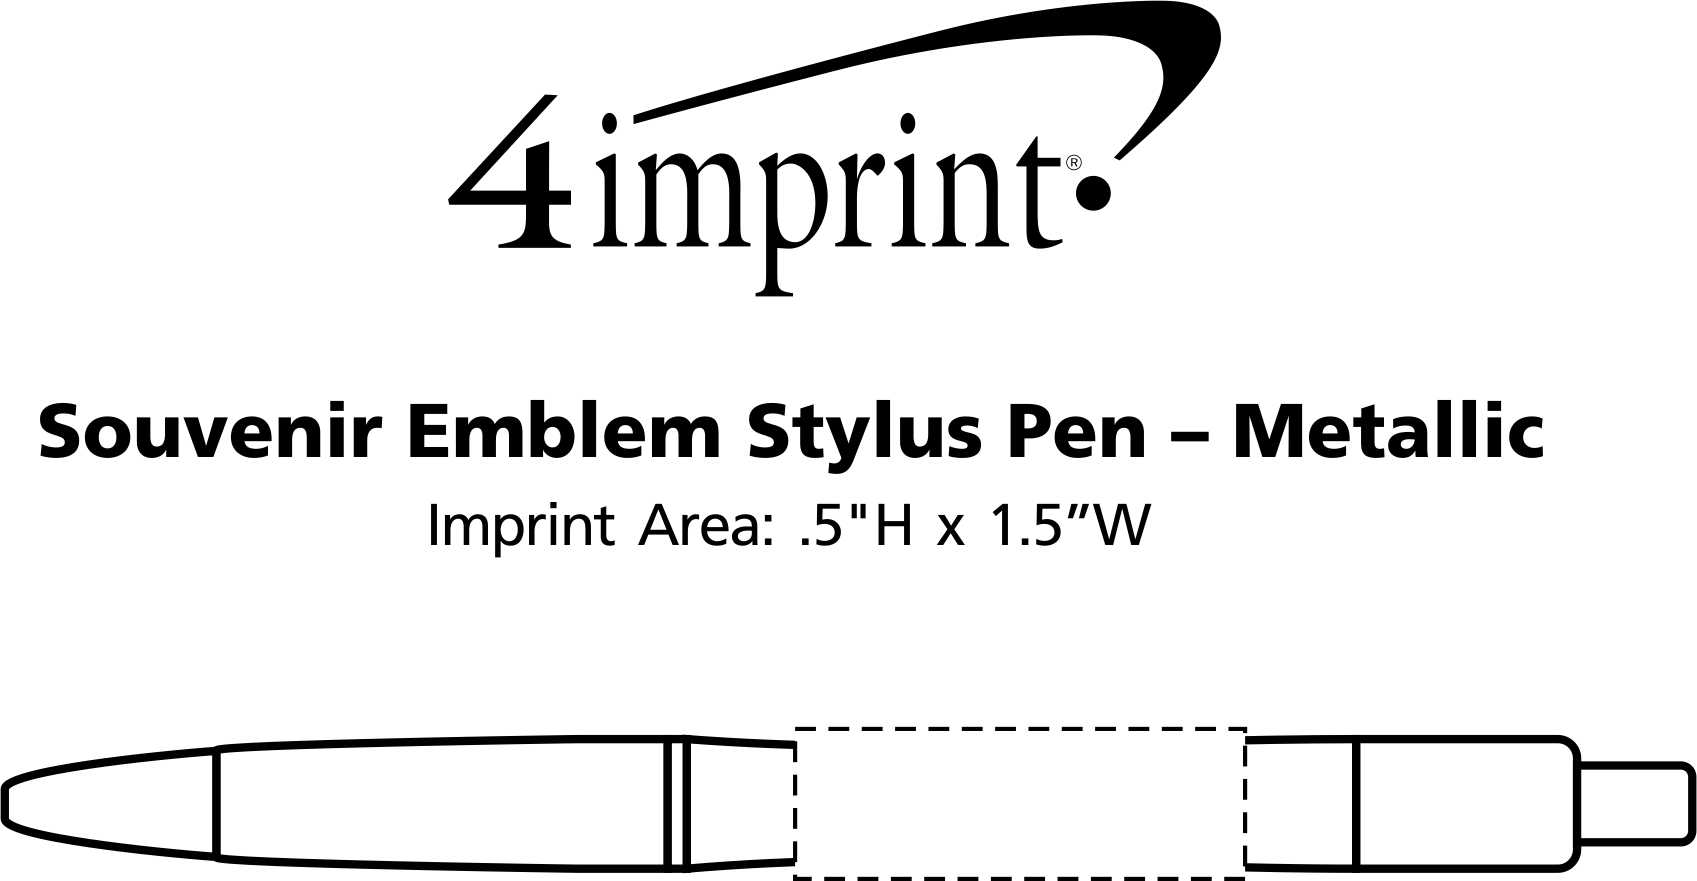 Imprint Area of Bic Emblem Stylus Pen - Metallic